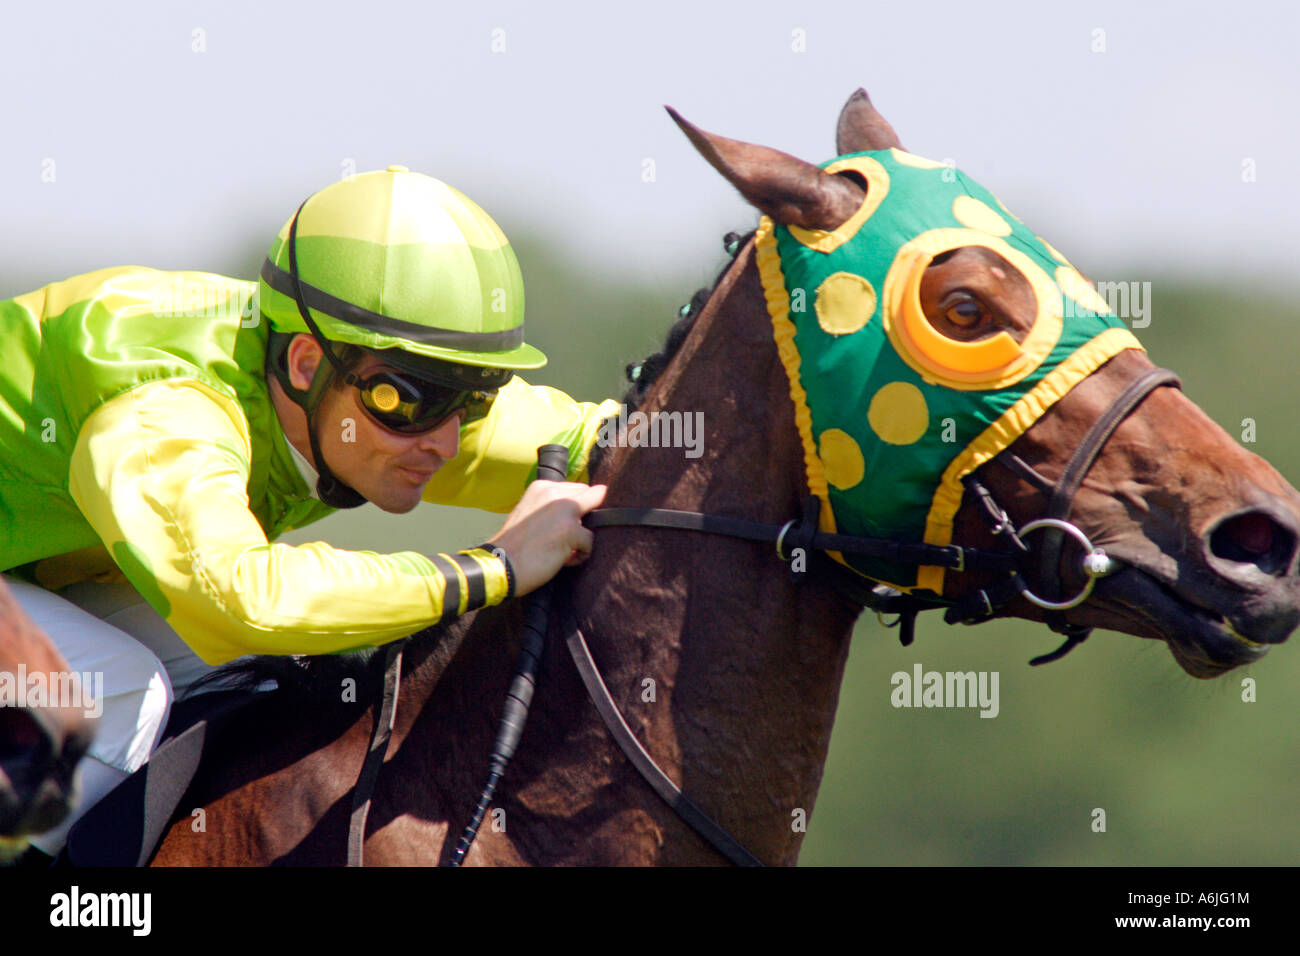 A race horse and his jockey - Stock Image